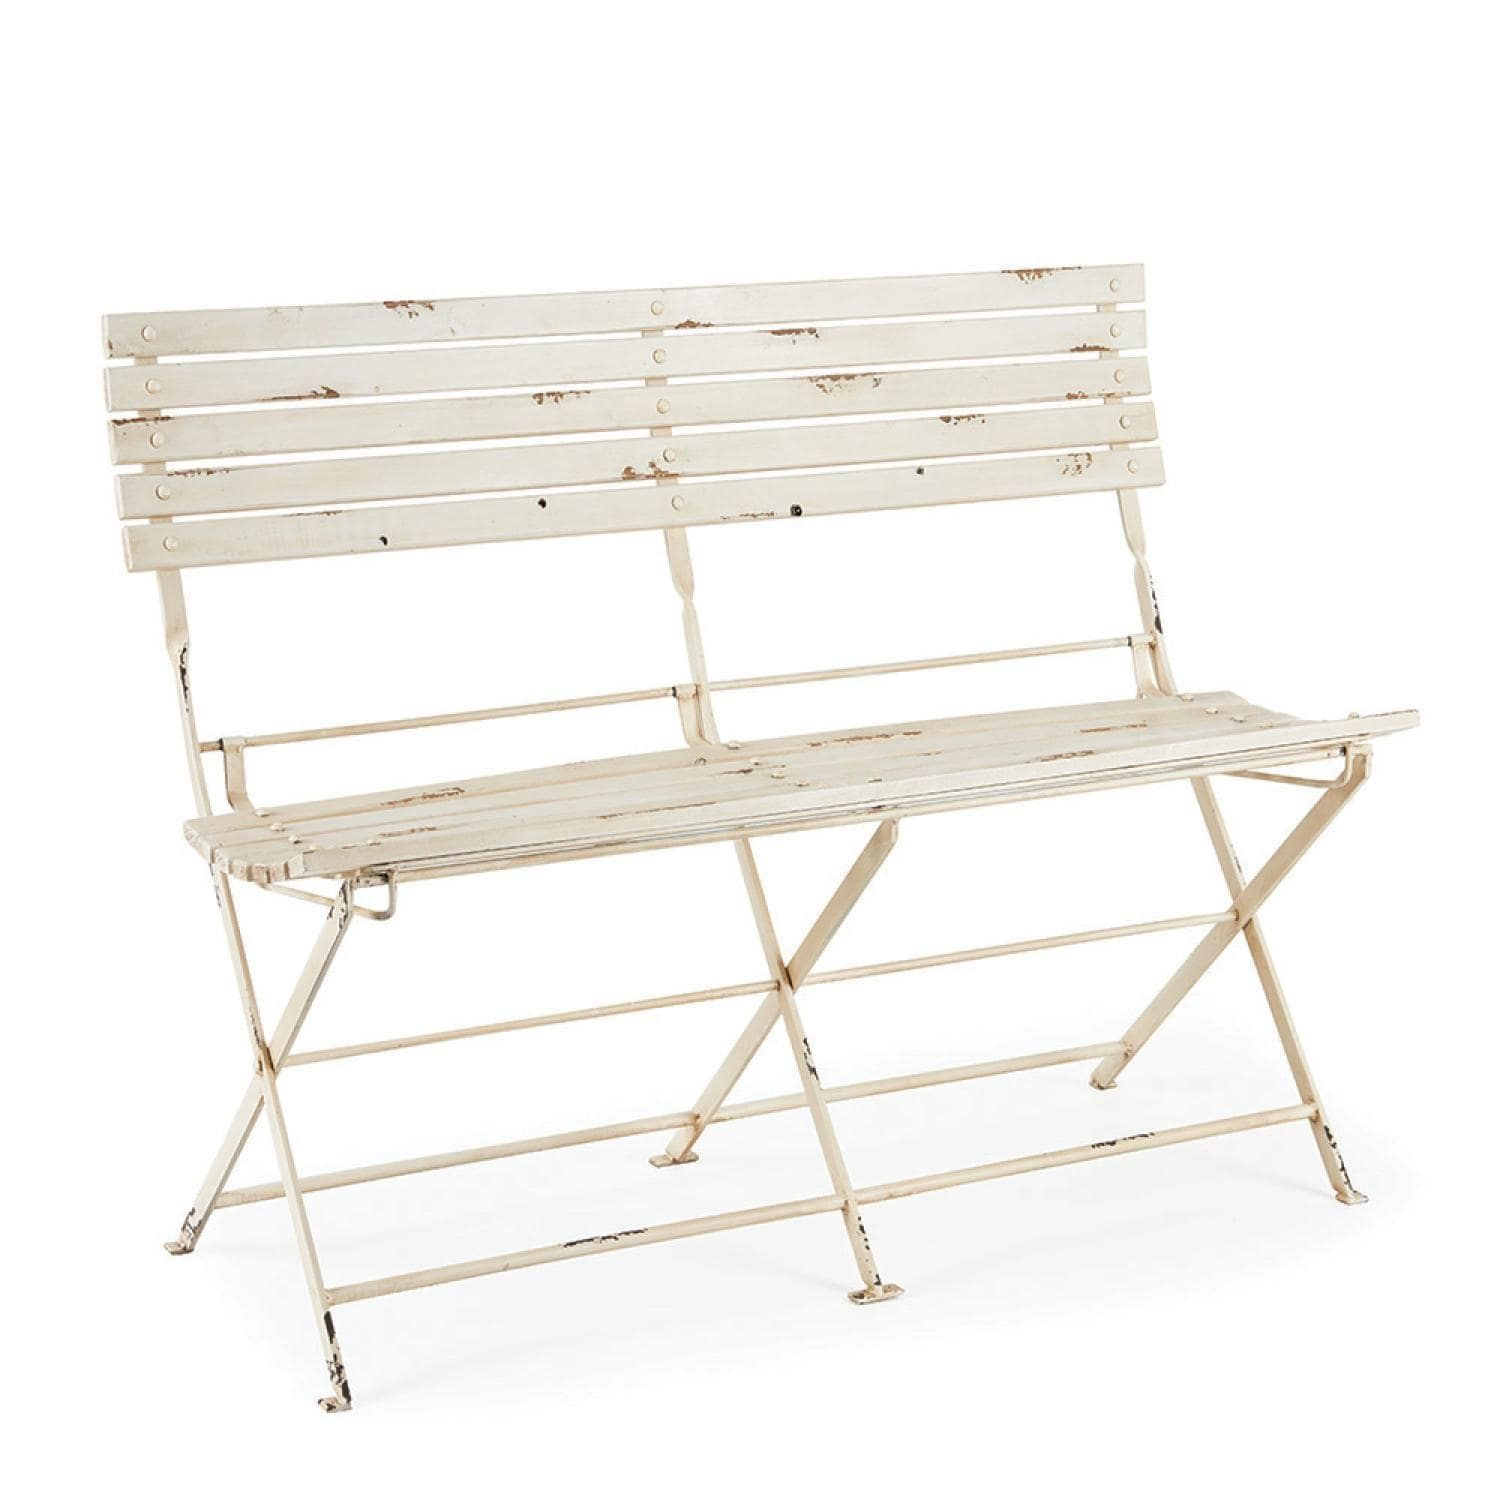 50u201d Distressed Antique White Metal Folding Slatted Indoor Garden Bench,  Patio Furniture